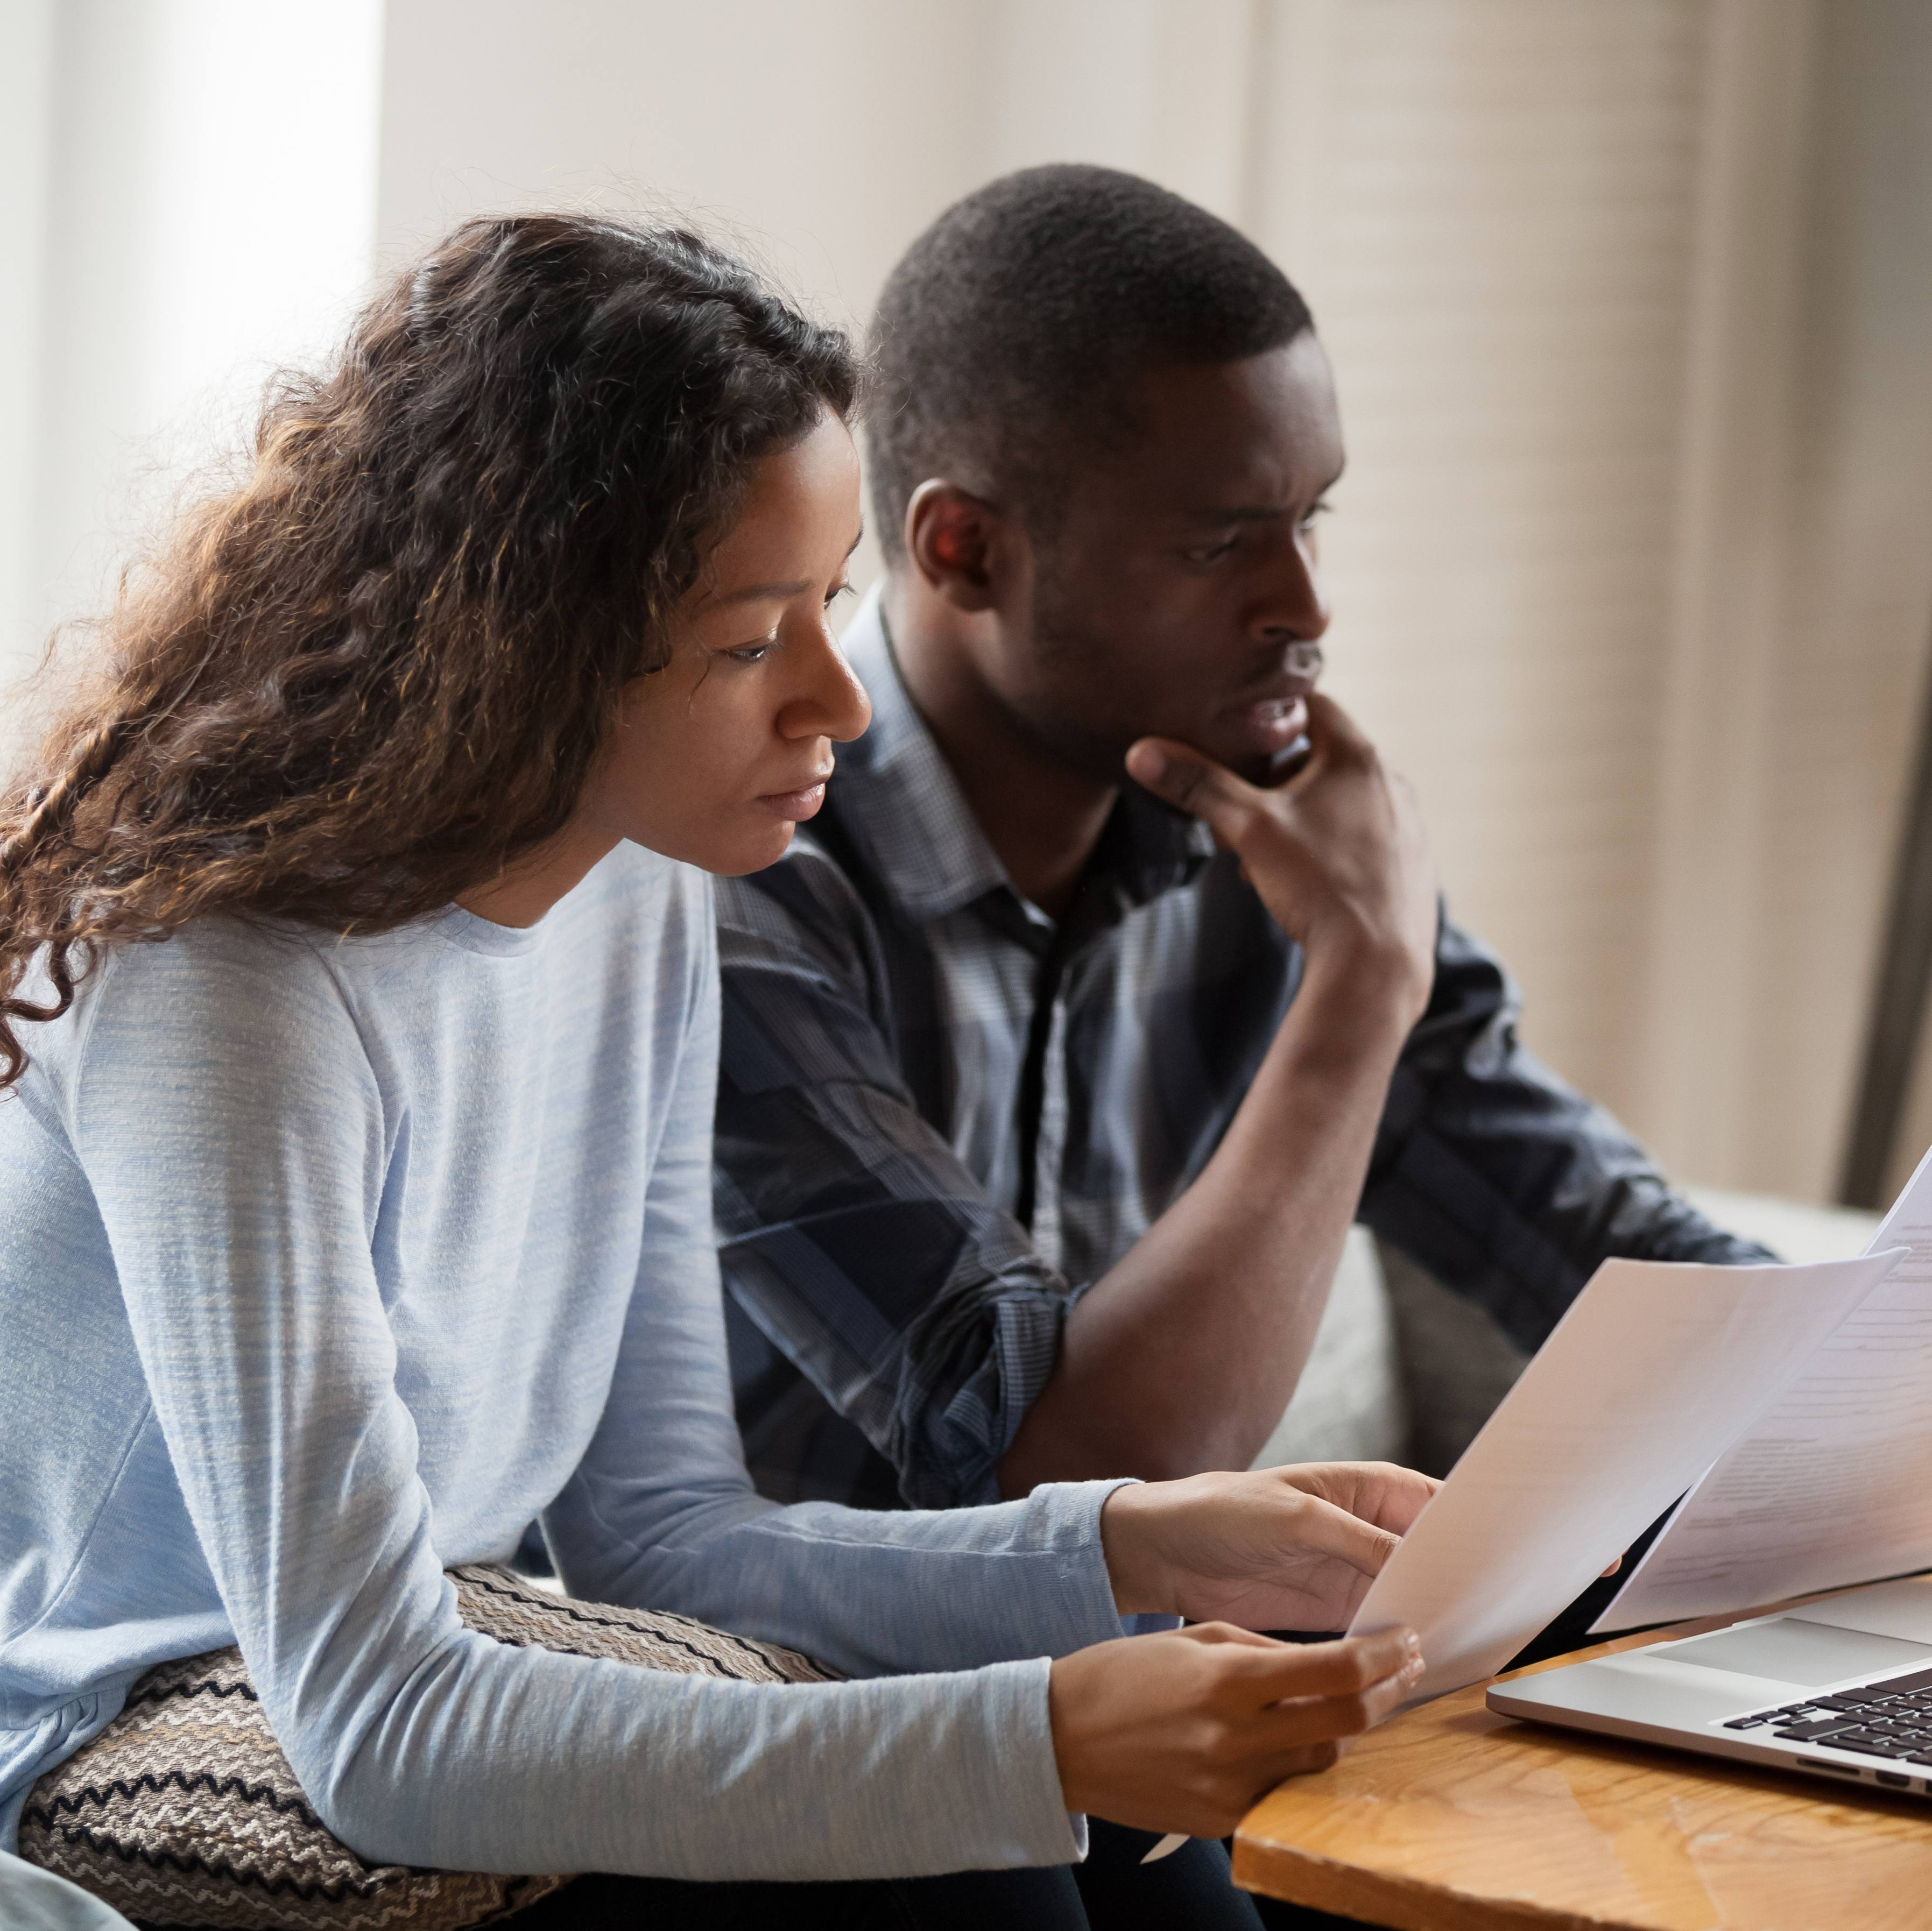 a young Black woman and young Black man sitting together on a couch looking seriously at information on a computer and reading paper documents